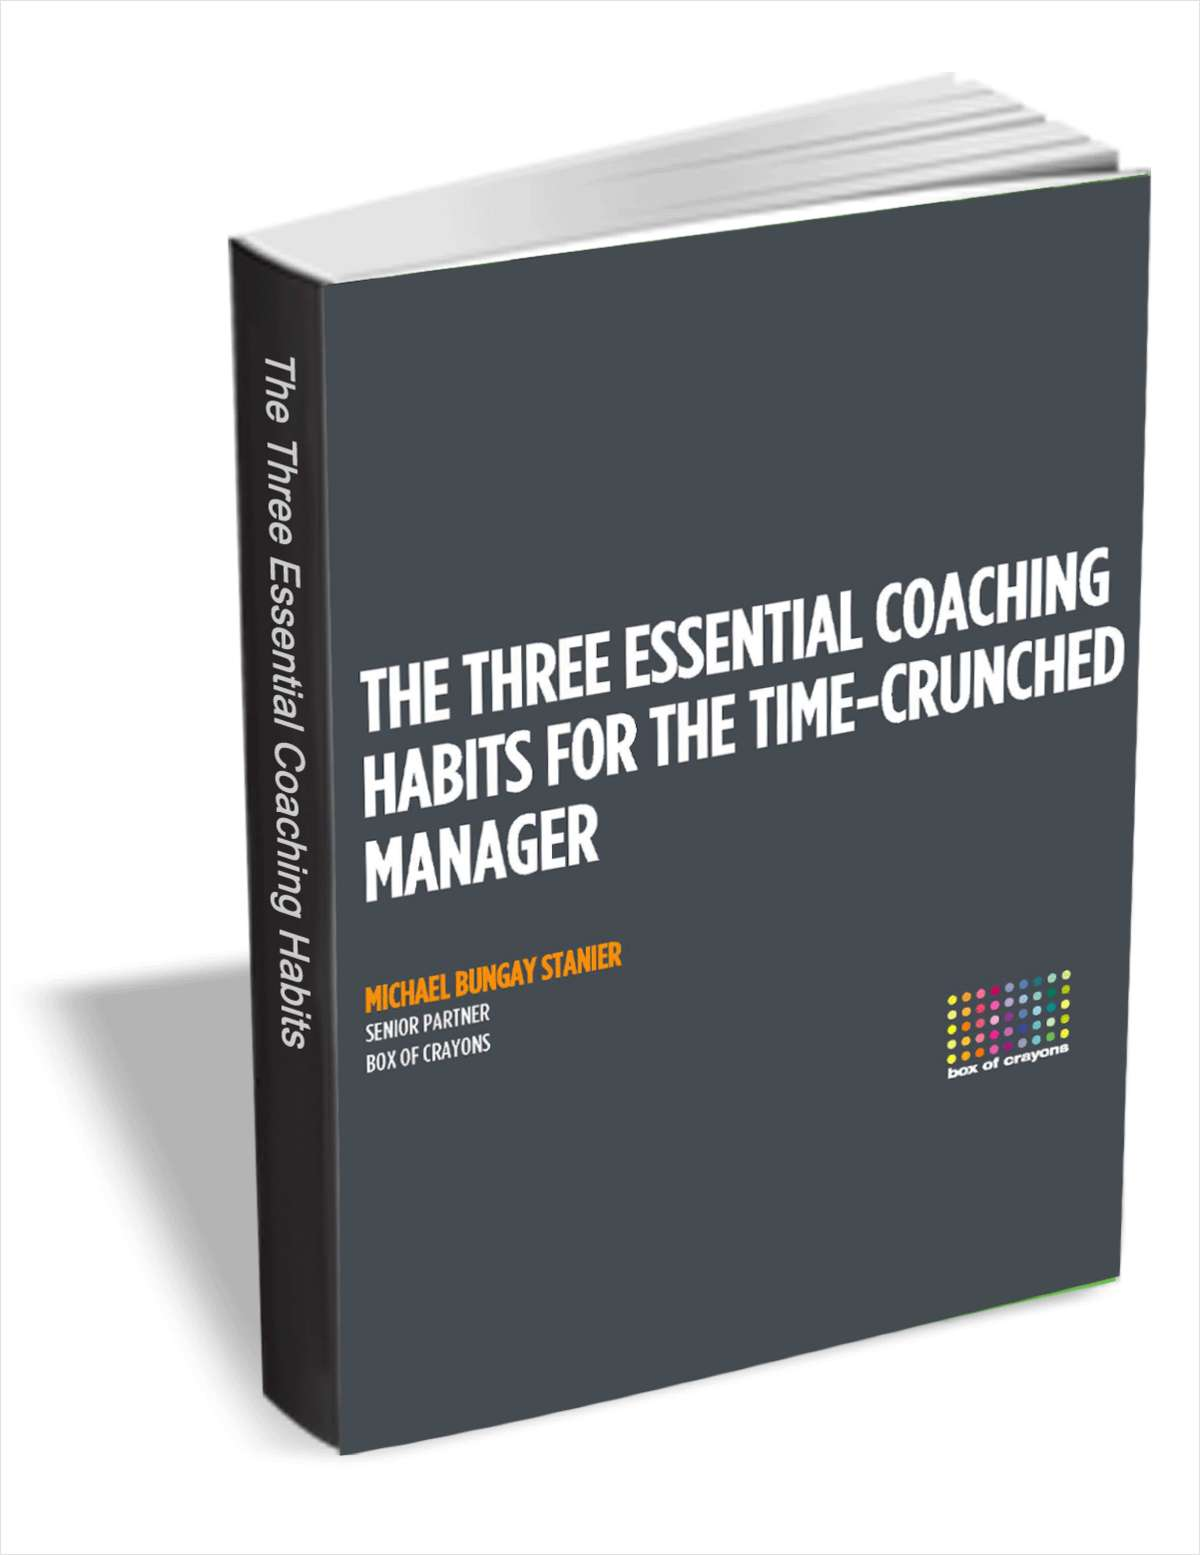 The Three Essential Coaching Habits for the Time-Crunched Manager